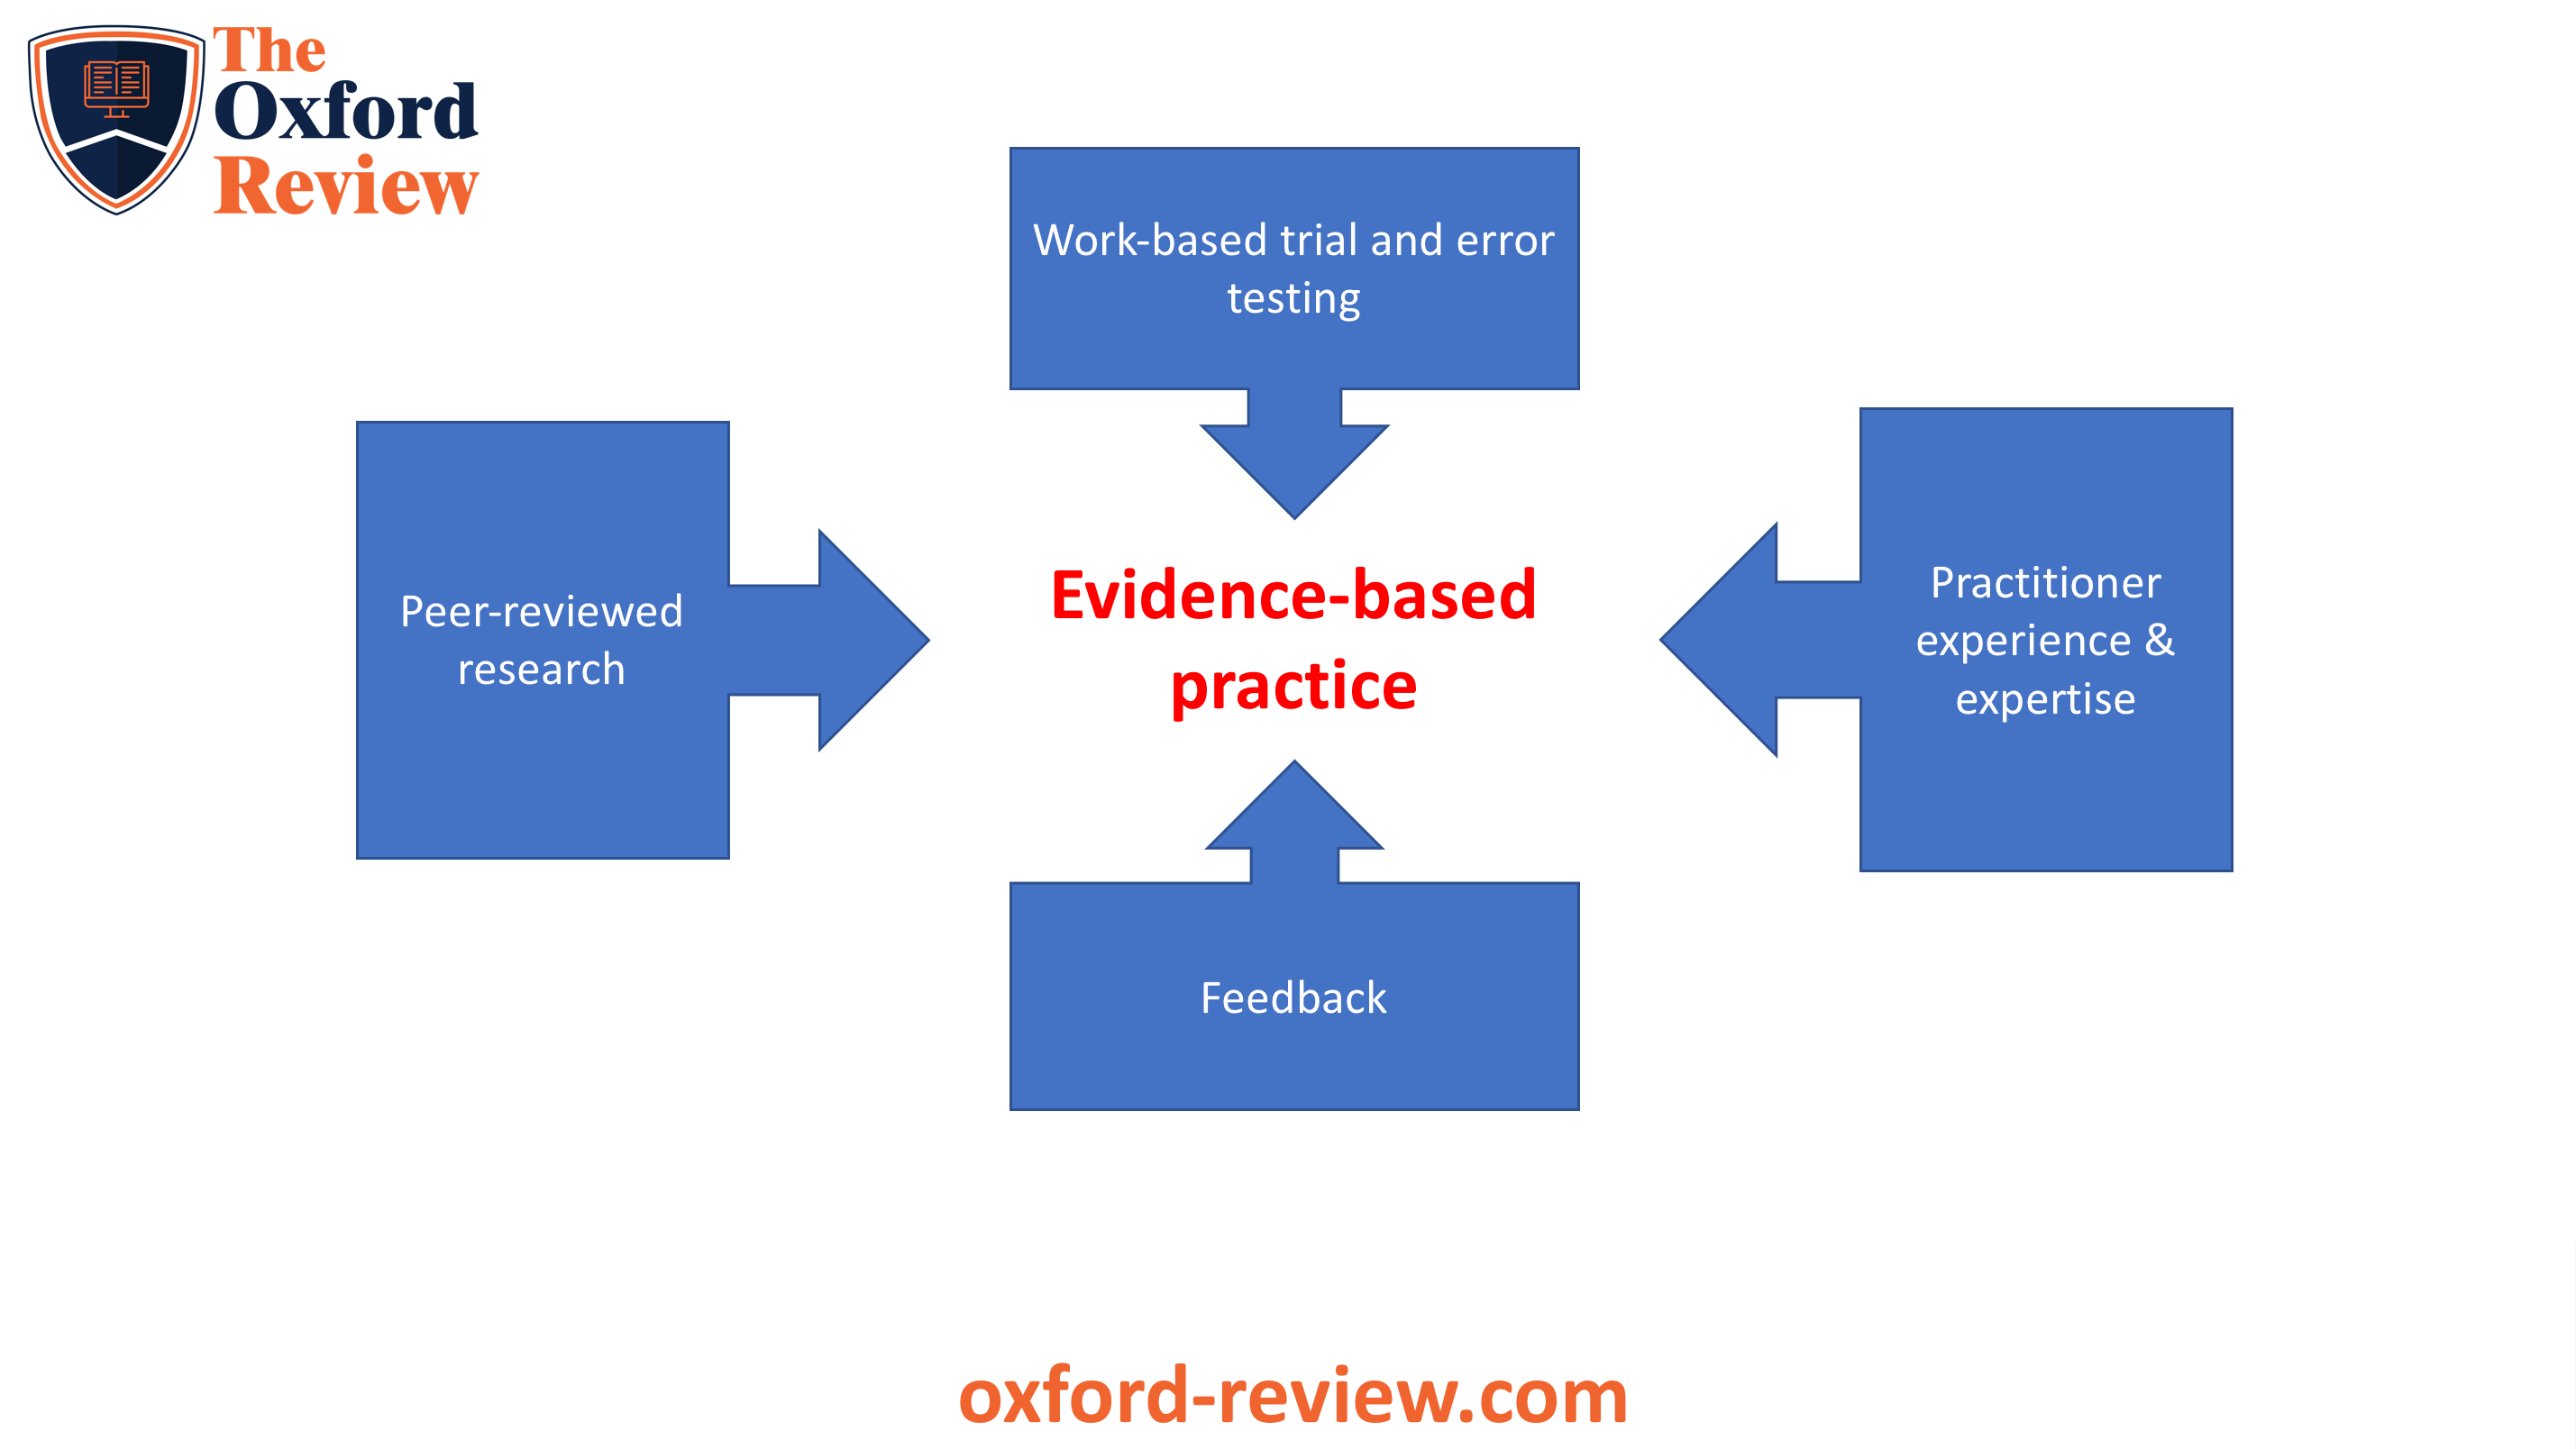 Evidence-based practice sources